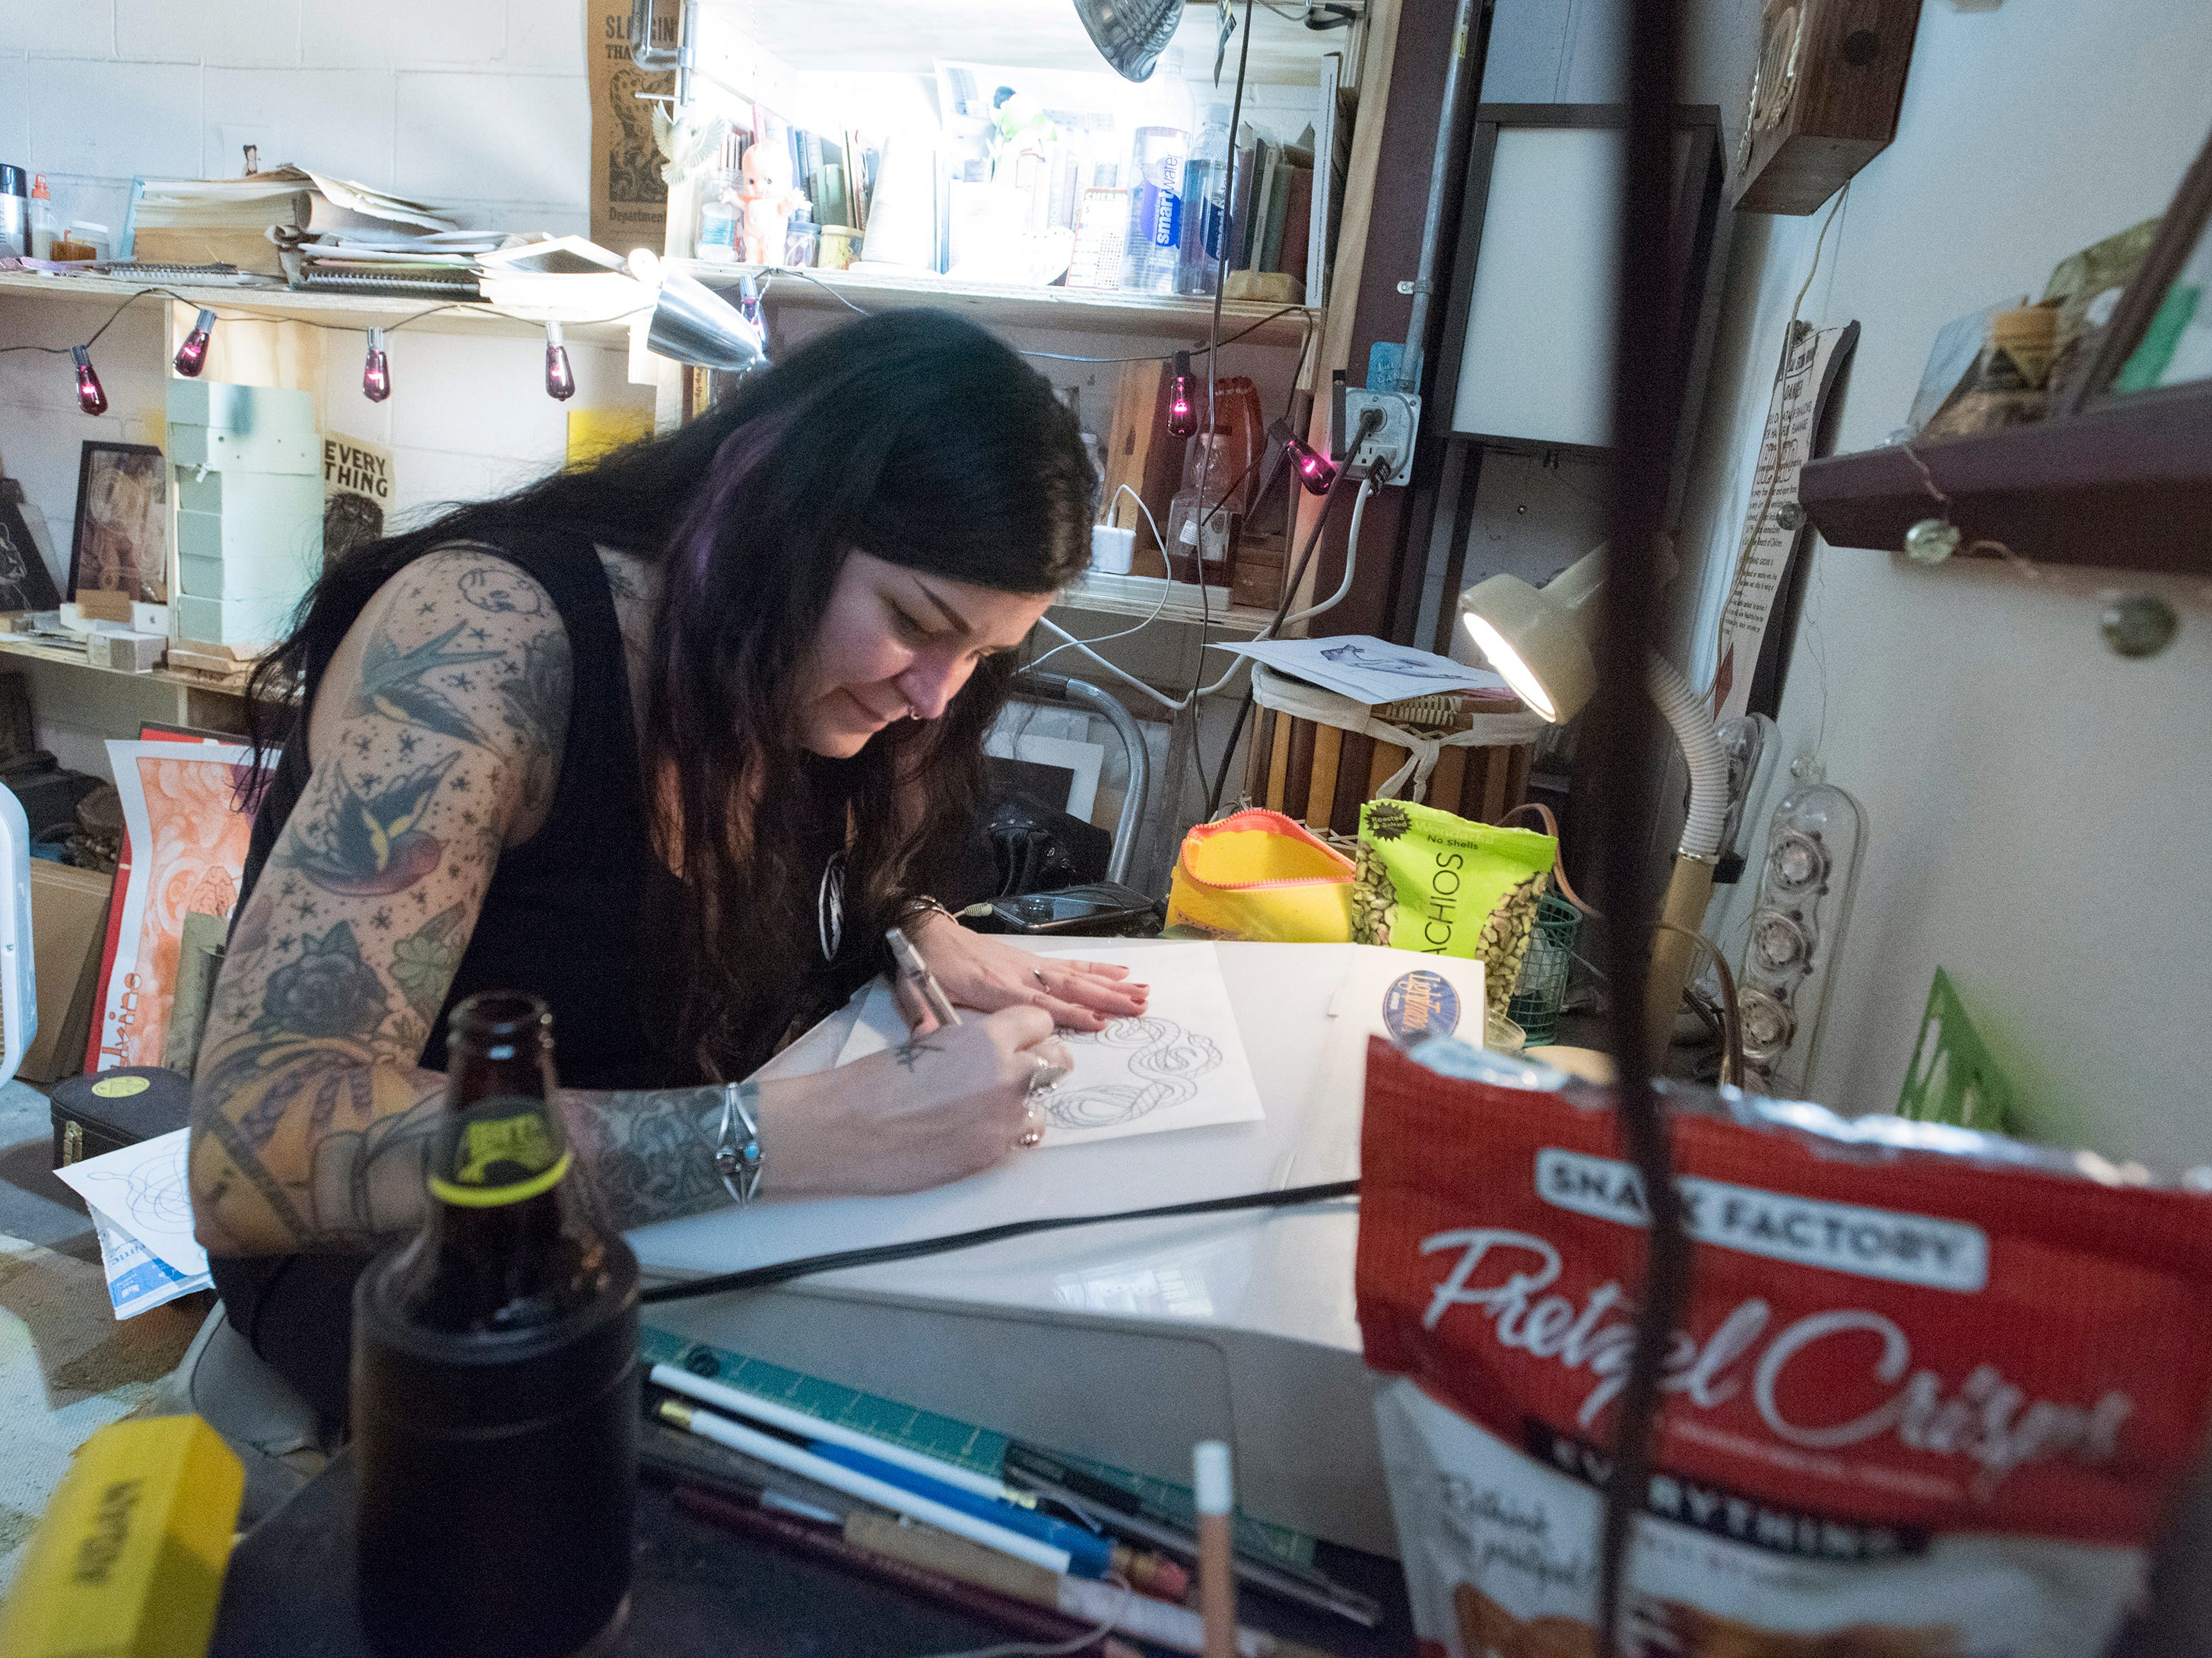 PHOTOS: Bare Hand Collective brings artists together